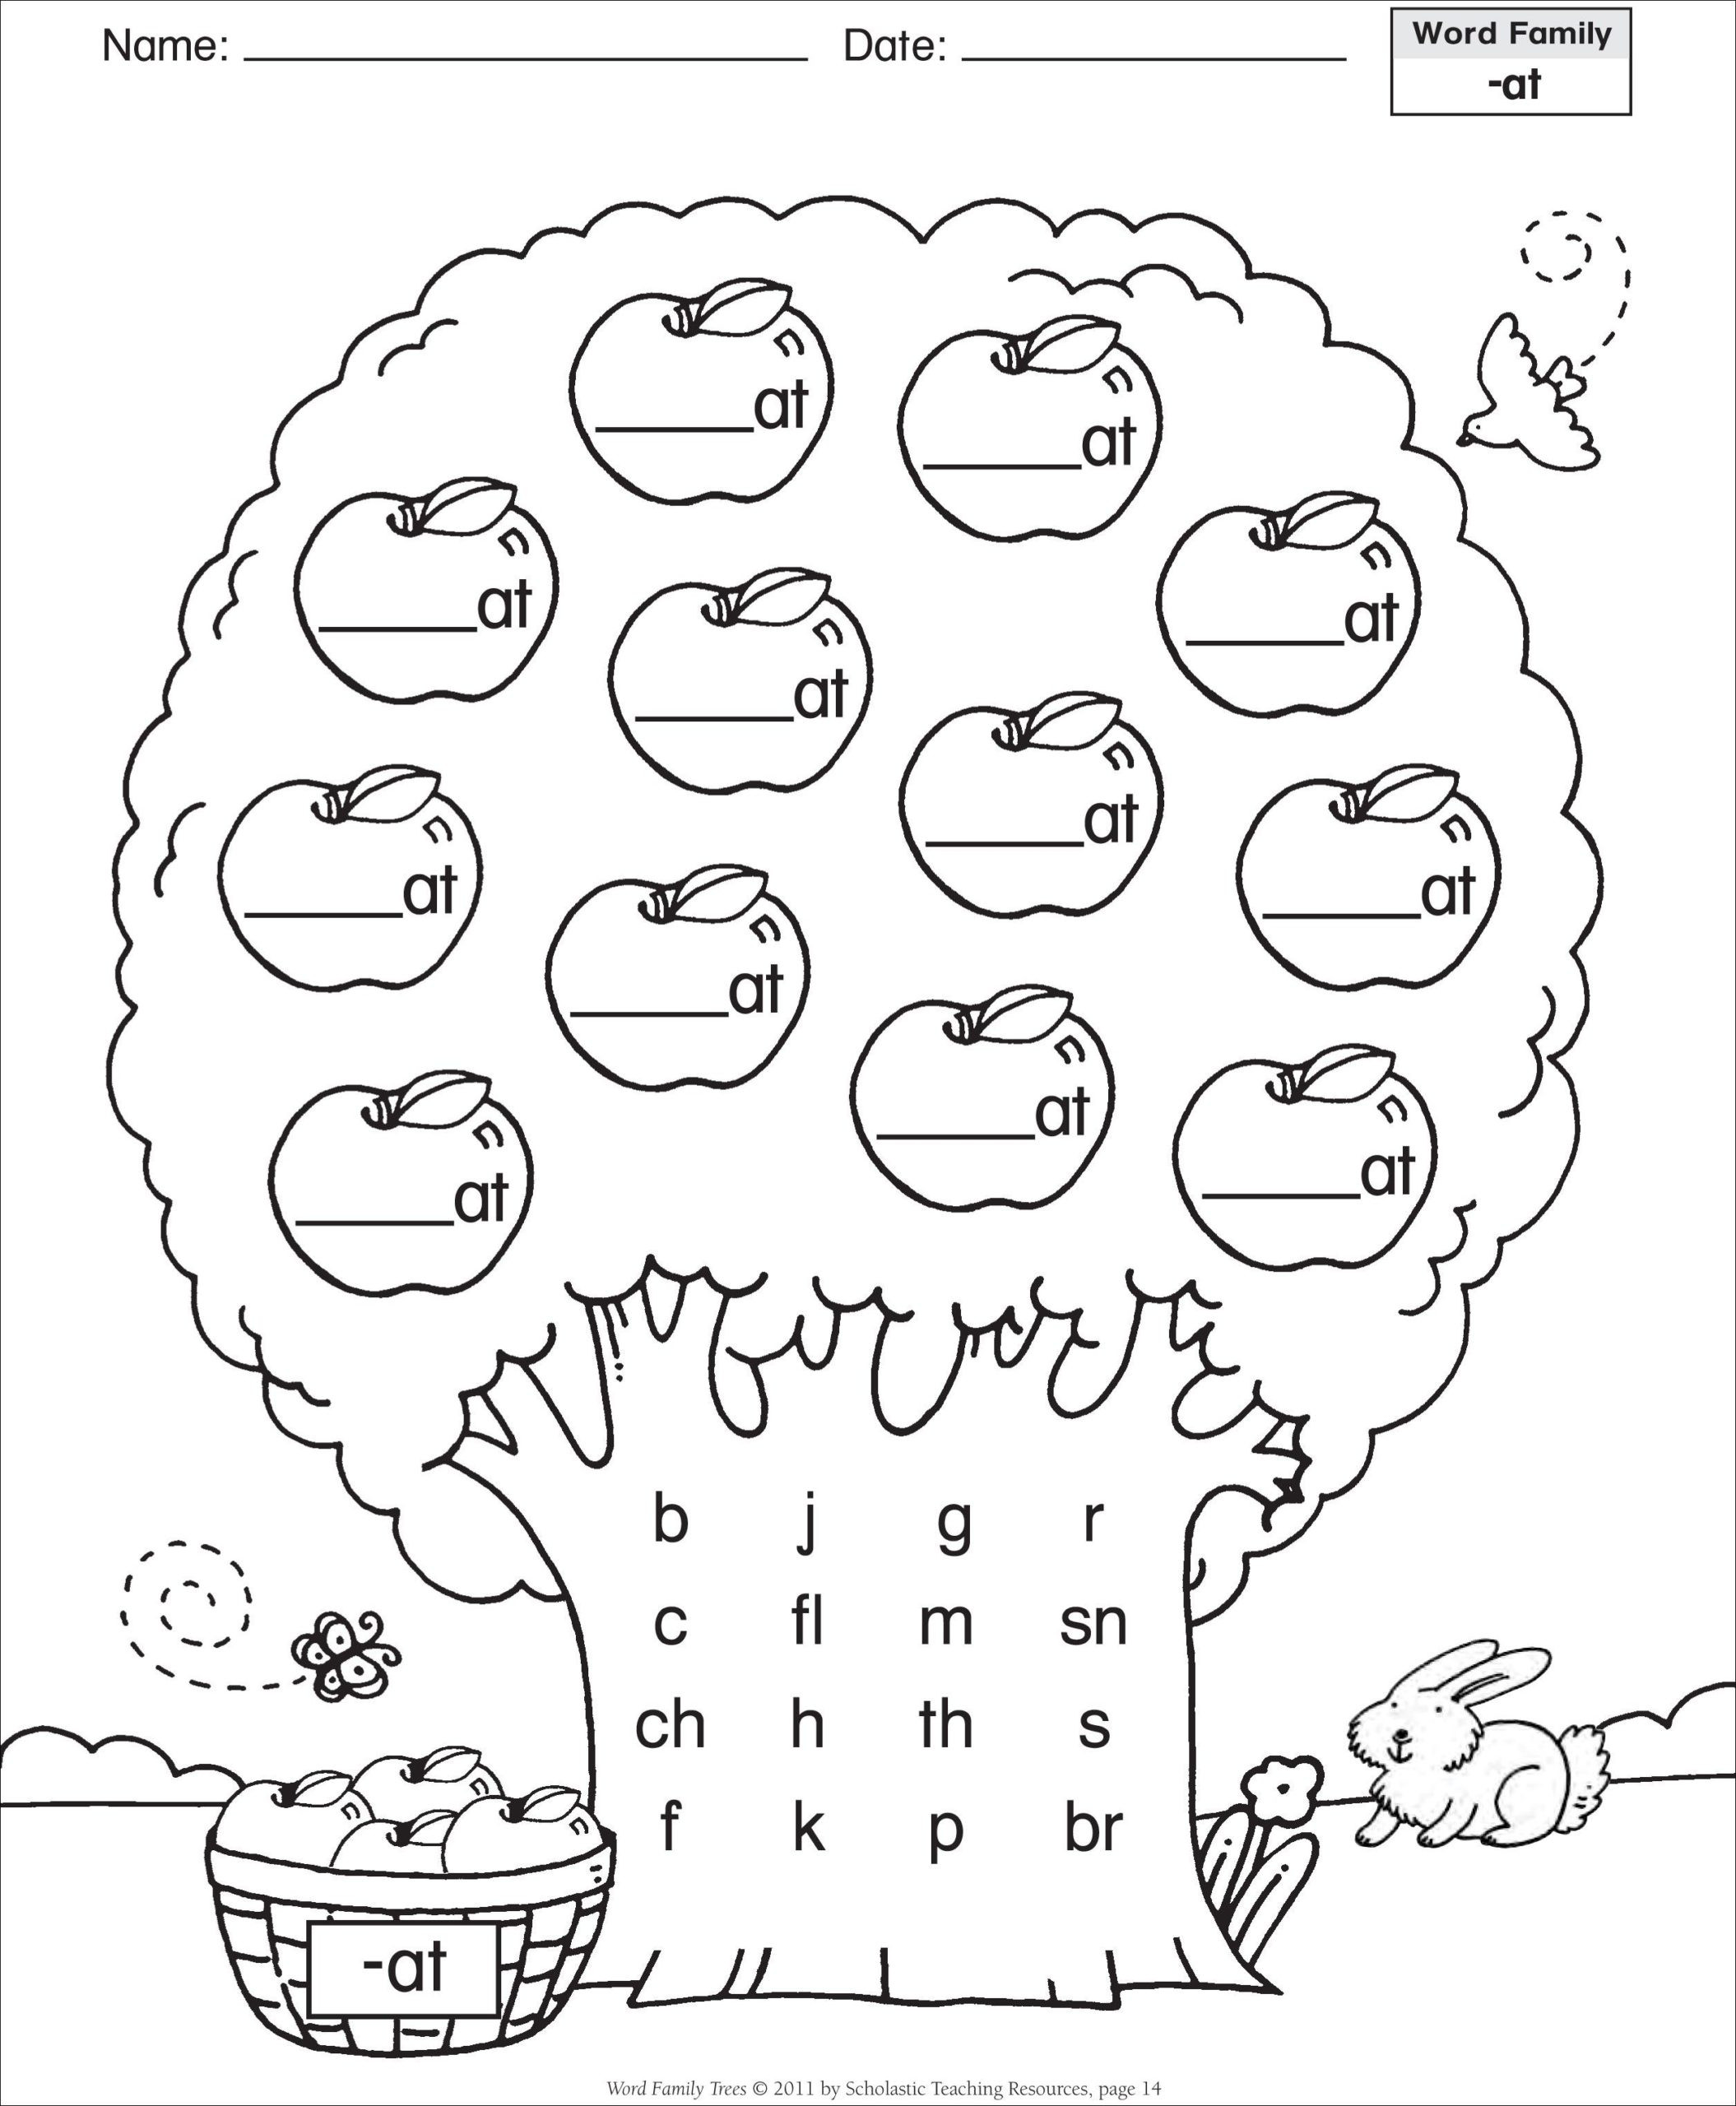 Blends Worksheets for 1st Grade Word Family Template Short Vowel at Tree Consonant Blends